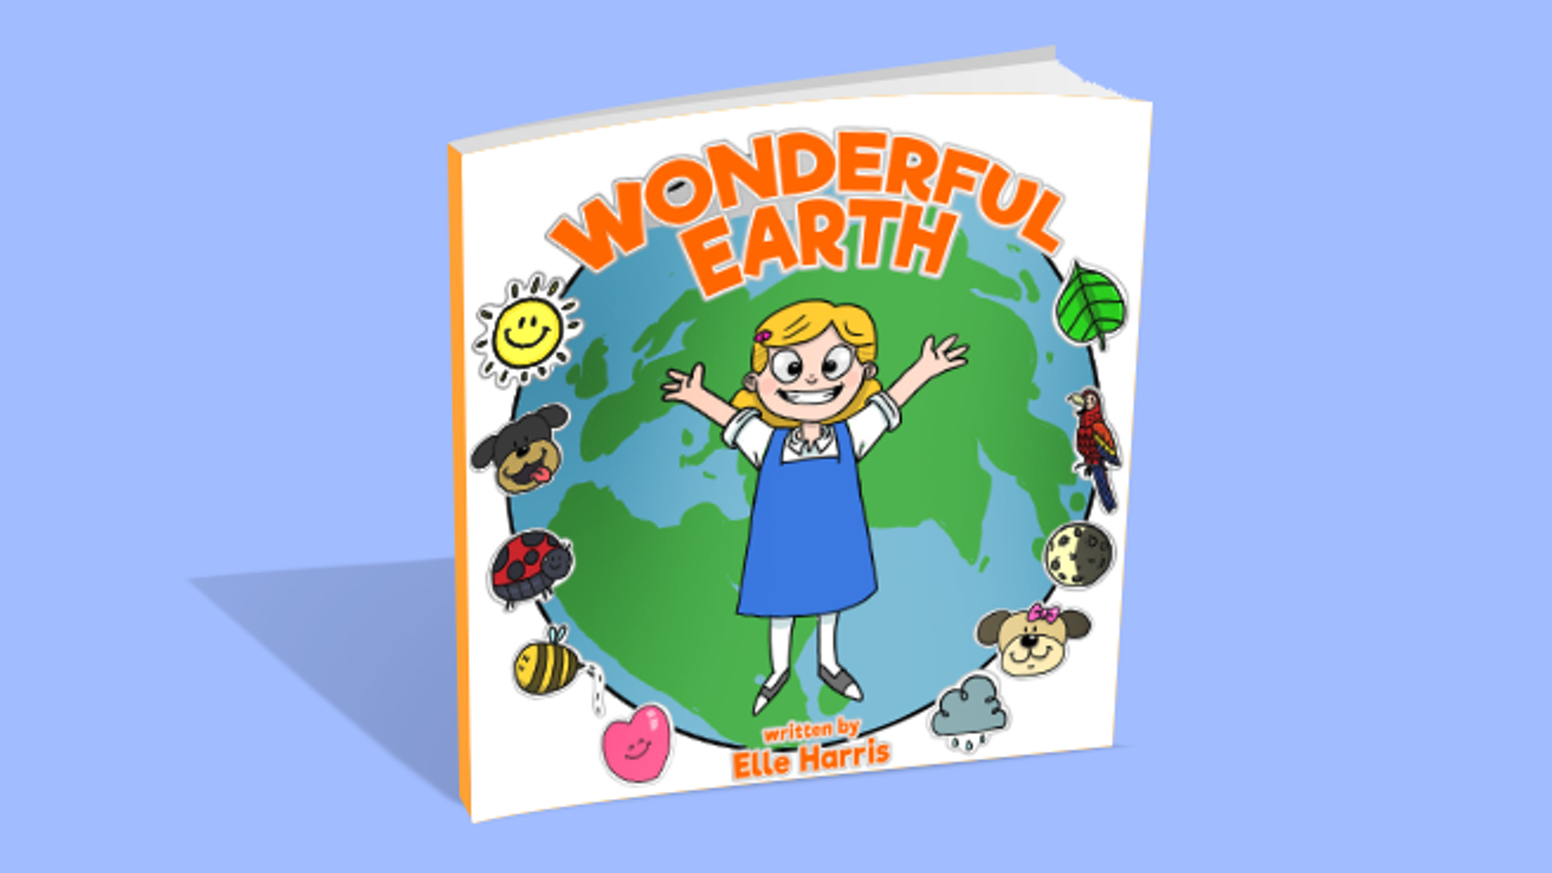 Experience the world and nature through the wonder-filled eyes of a child! Written by 8-year-old, Elle Harris.